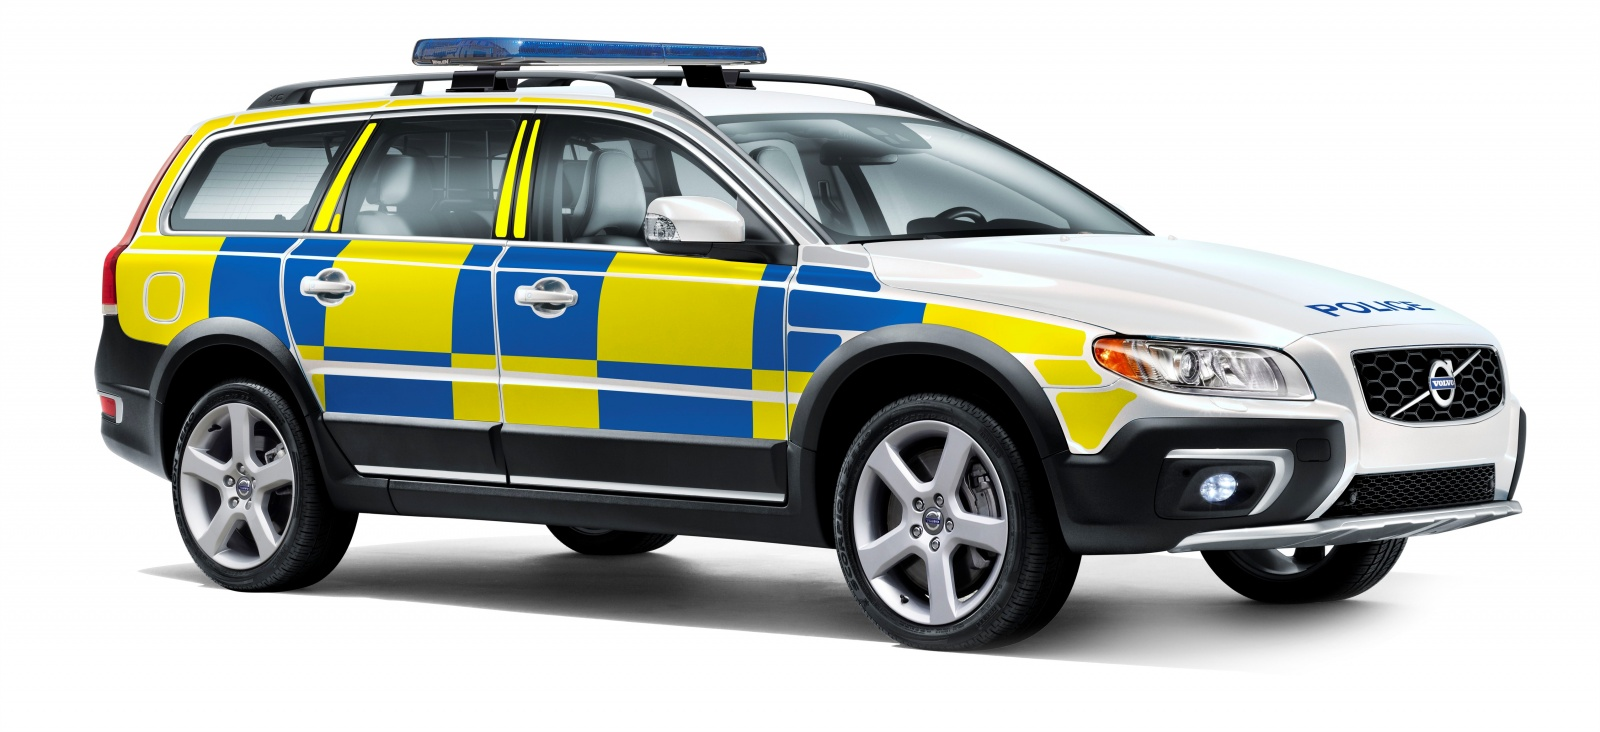 Uk clipartfest visiting nursery. British police car clipart